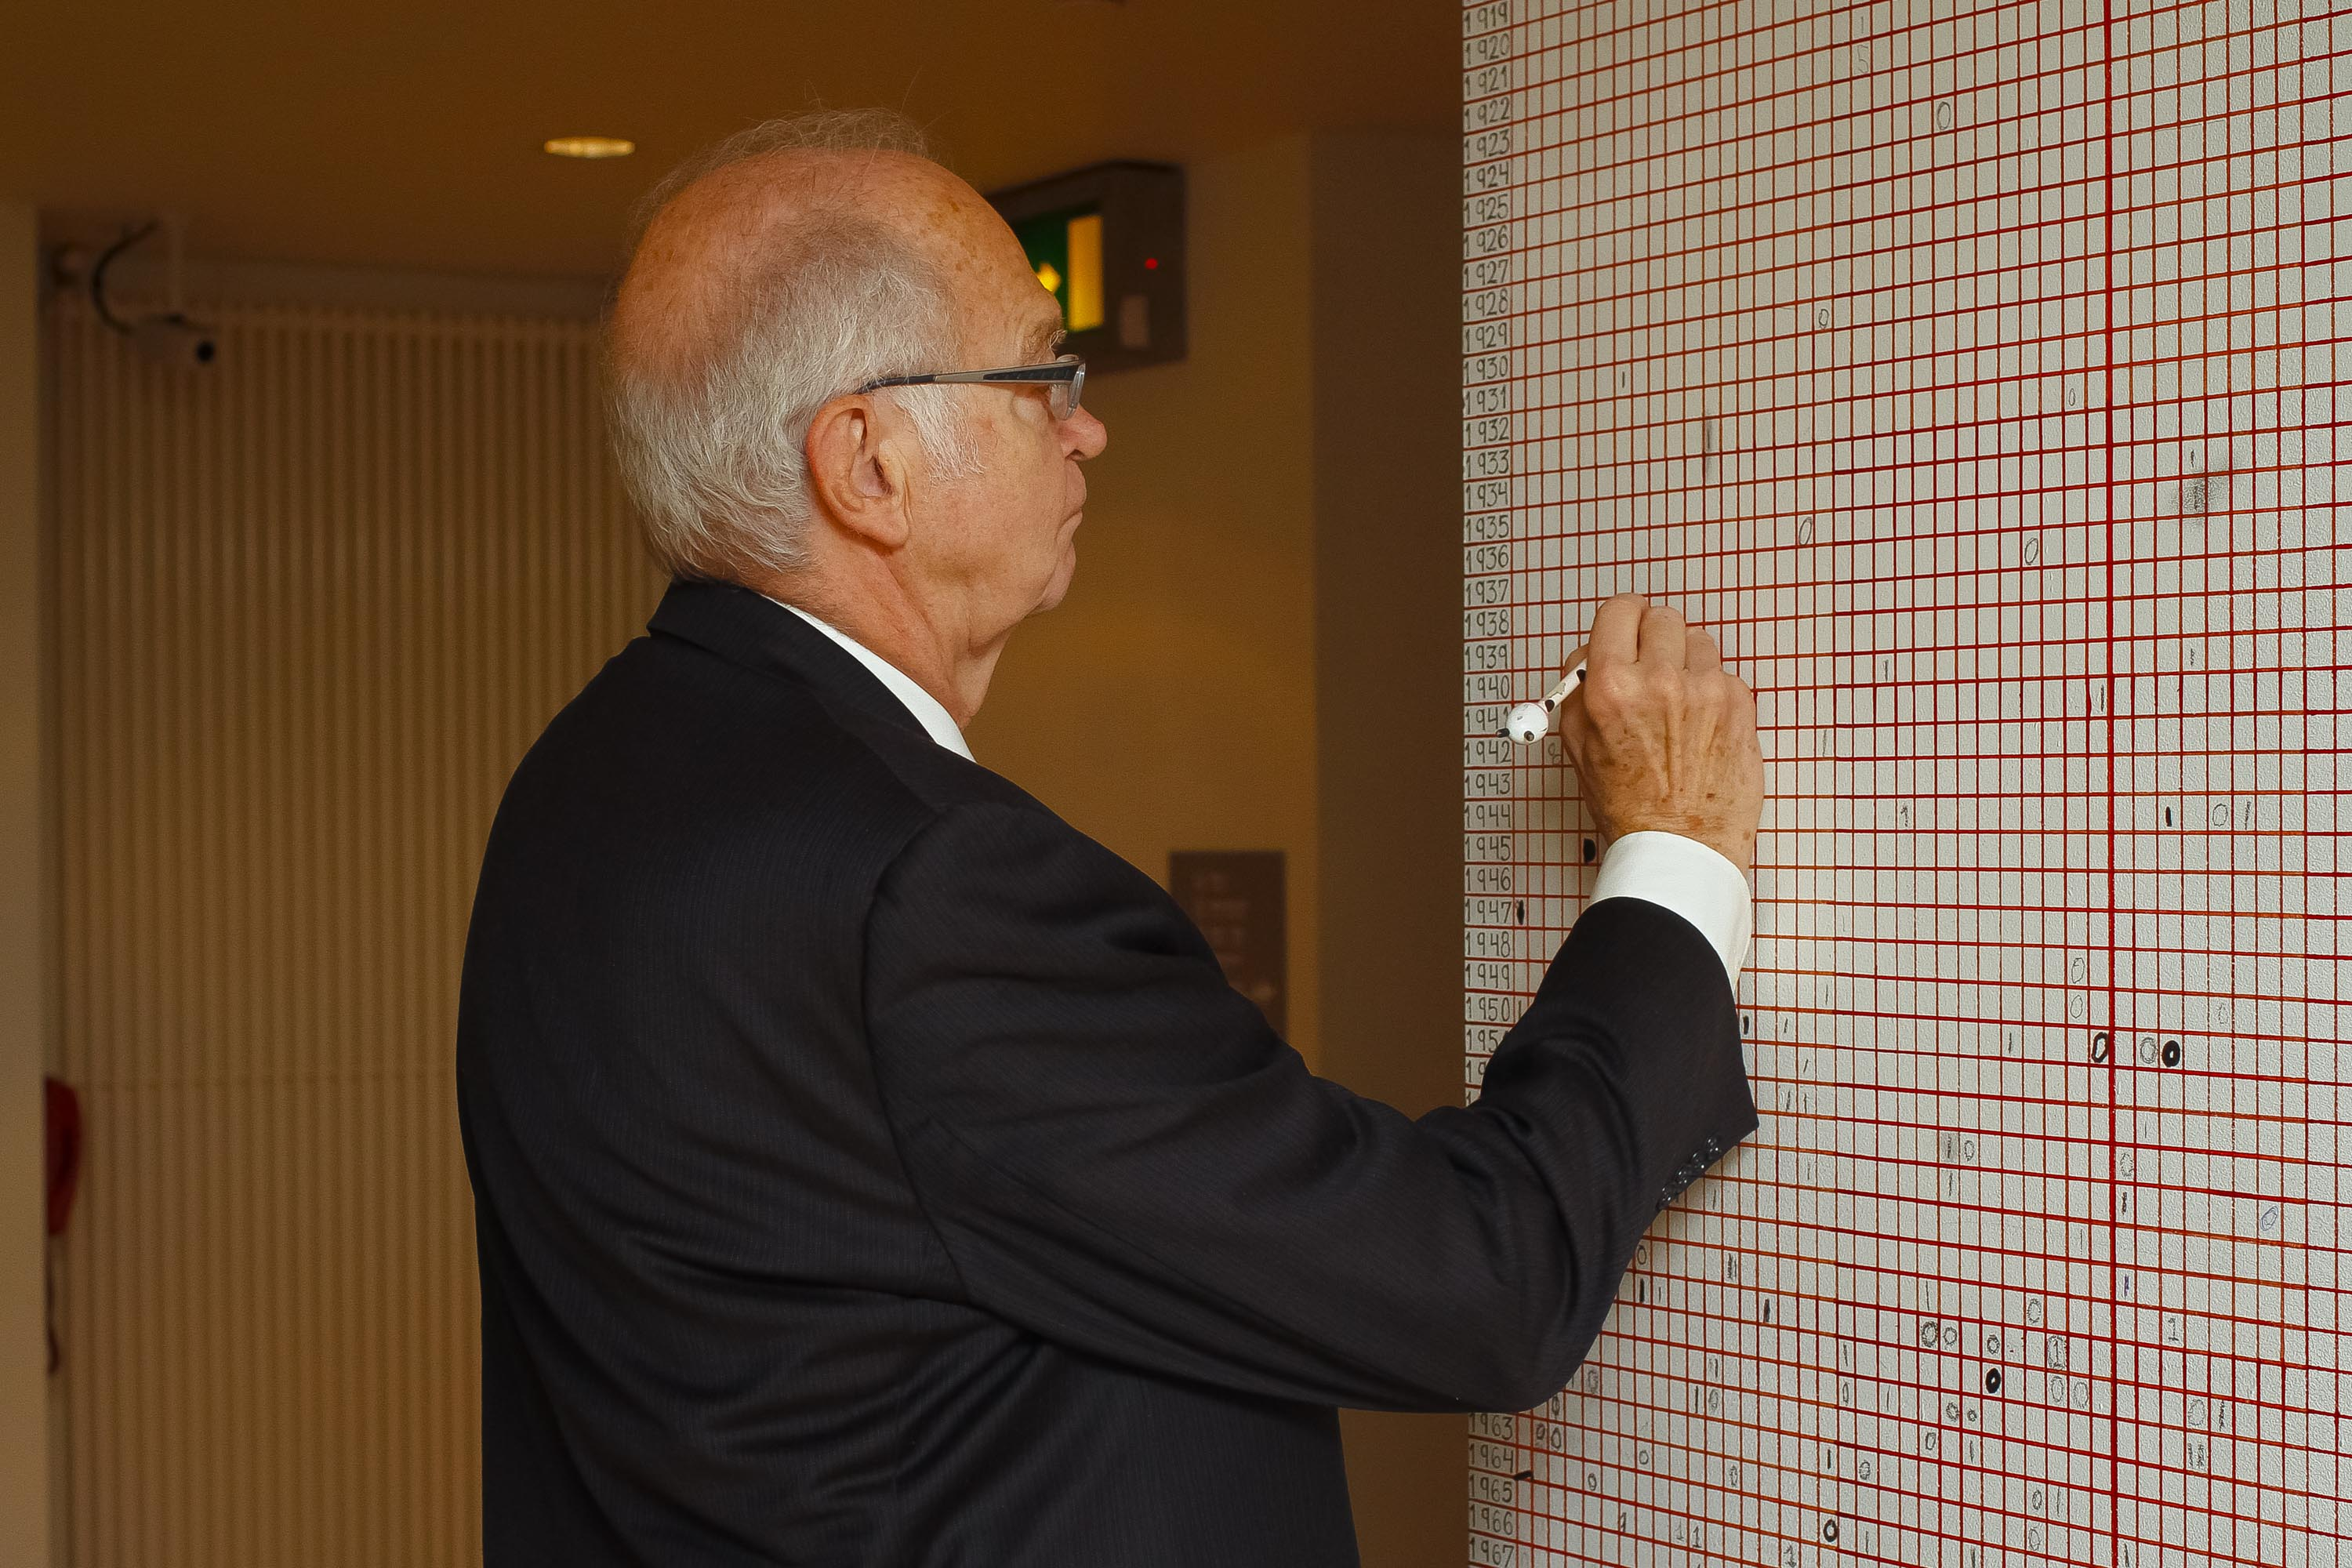 Donald E. Knuth adds his mark to the Live Statistics Wall at the Glucksman Gallery.